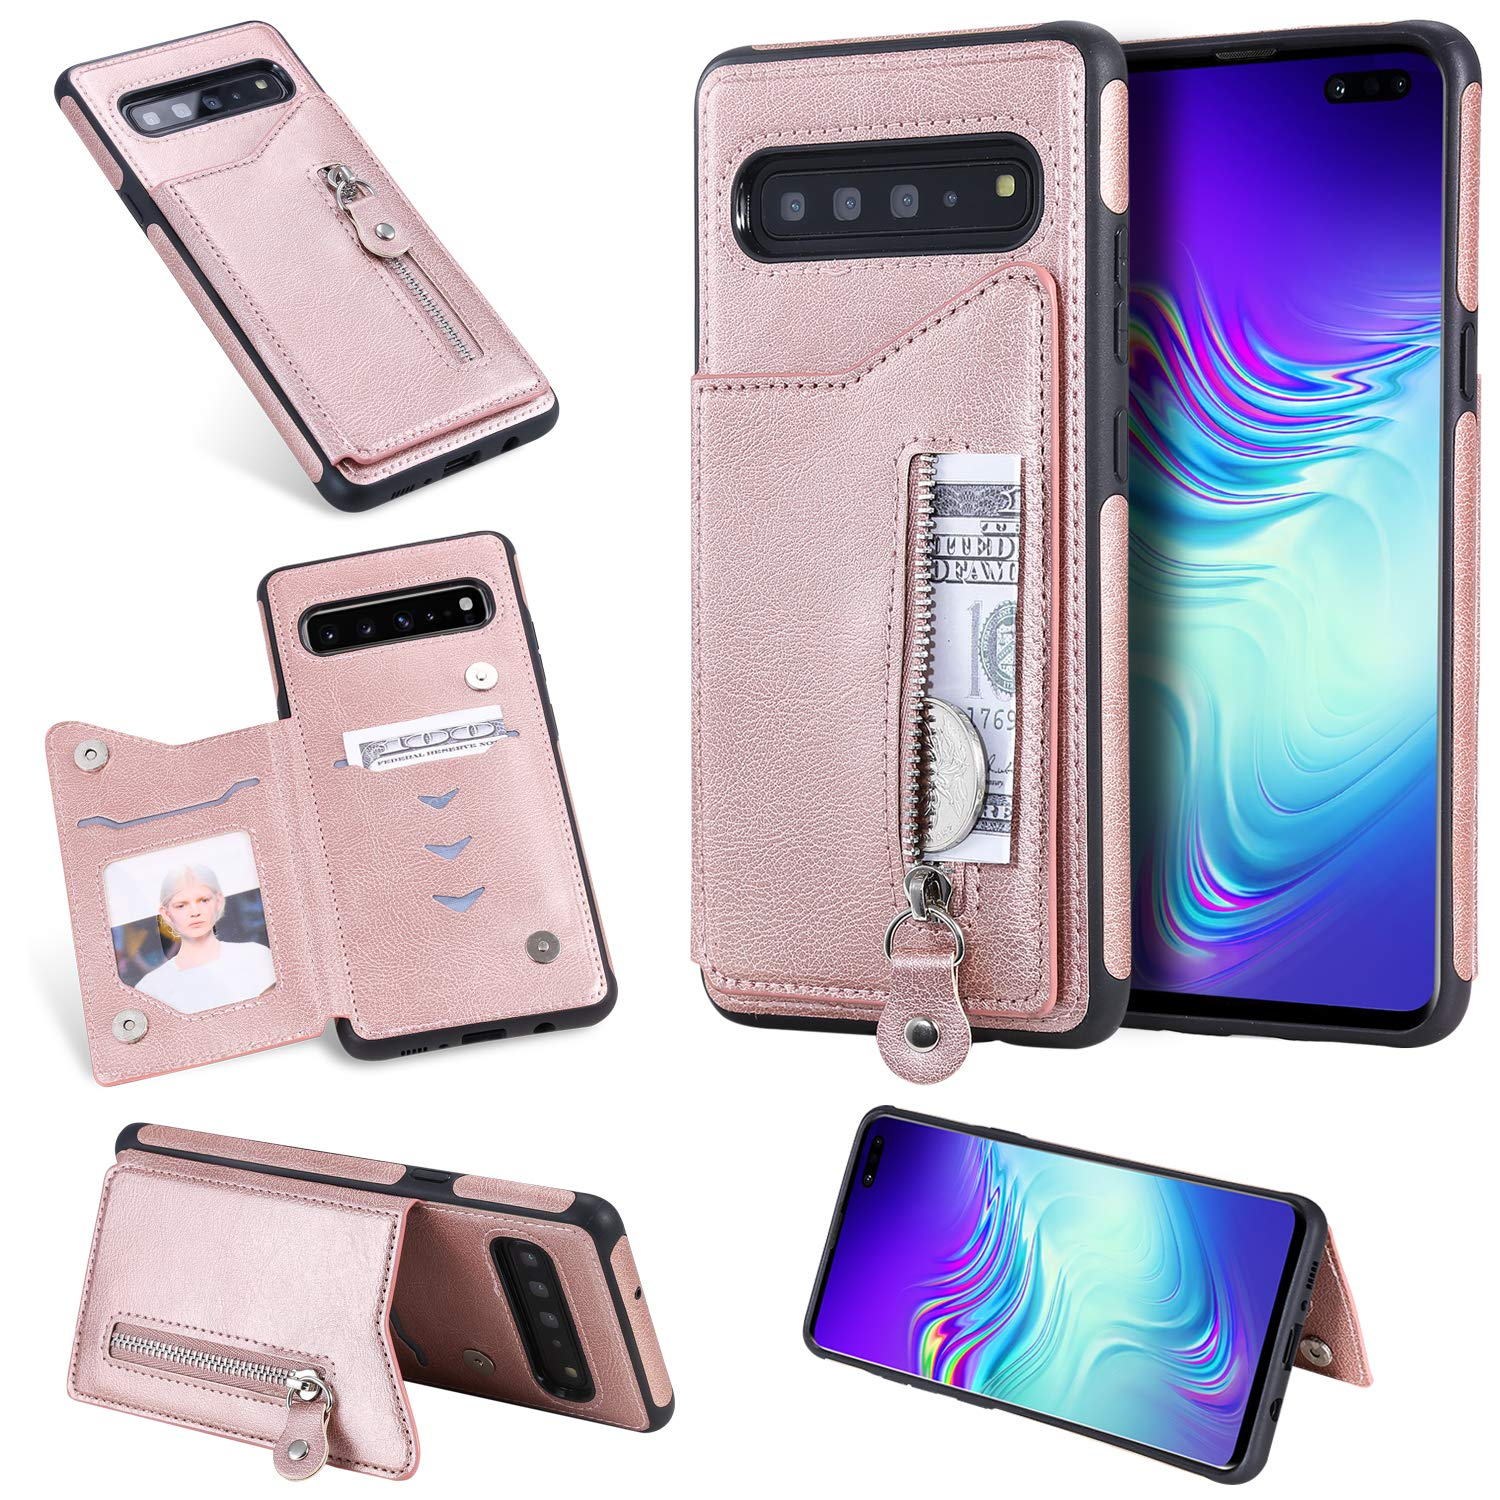 DAMONDY for Galaxy S10 5G Case,Zipper Wallet Purse Card Holders Design Cover Soft Shockproof Bumper Folio Flip Leather Kickstand Magnetic Clasp Case for Samsung Galaxy S10 5G 6.7inch-Rose Gold by DAMONDY